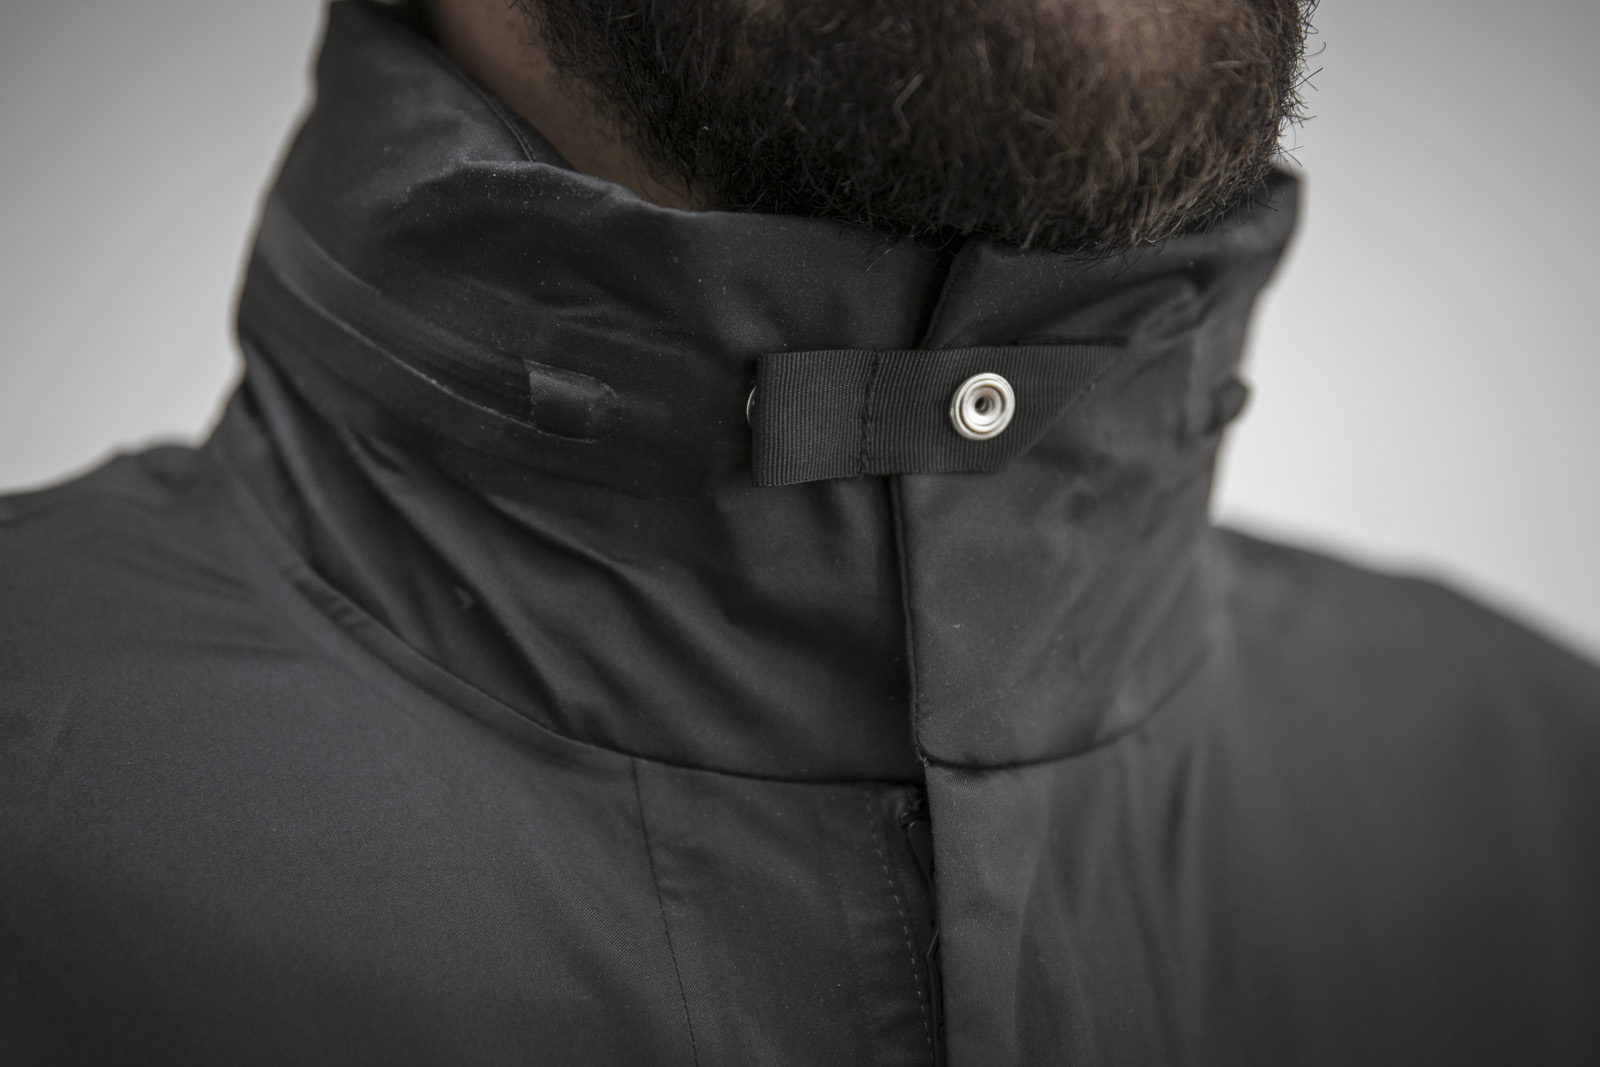 coldsmoke-m65-jacket-09